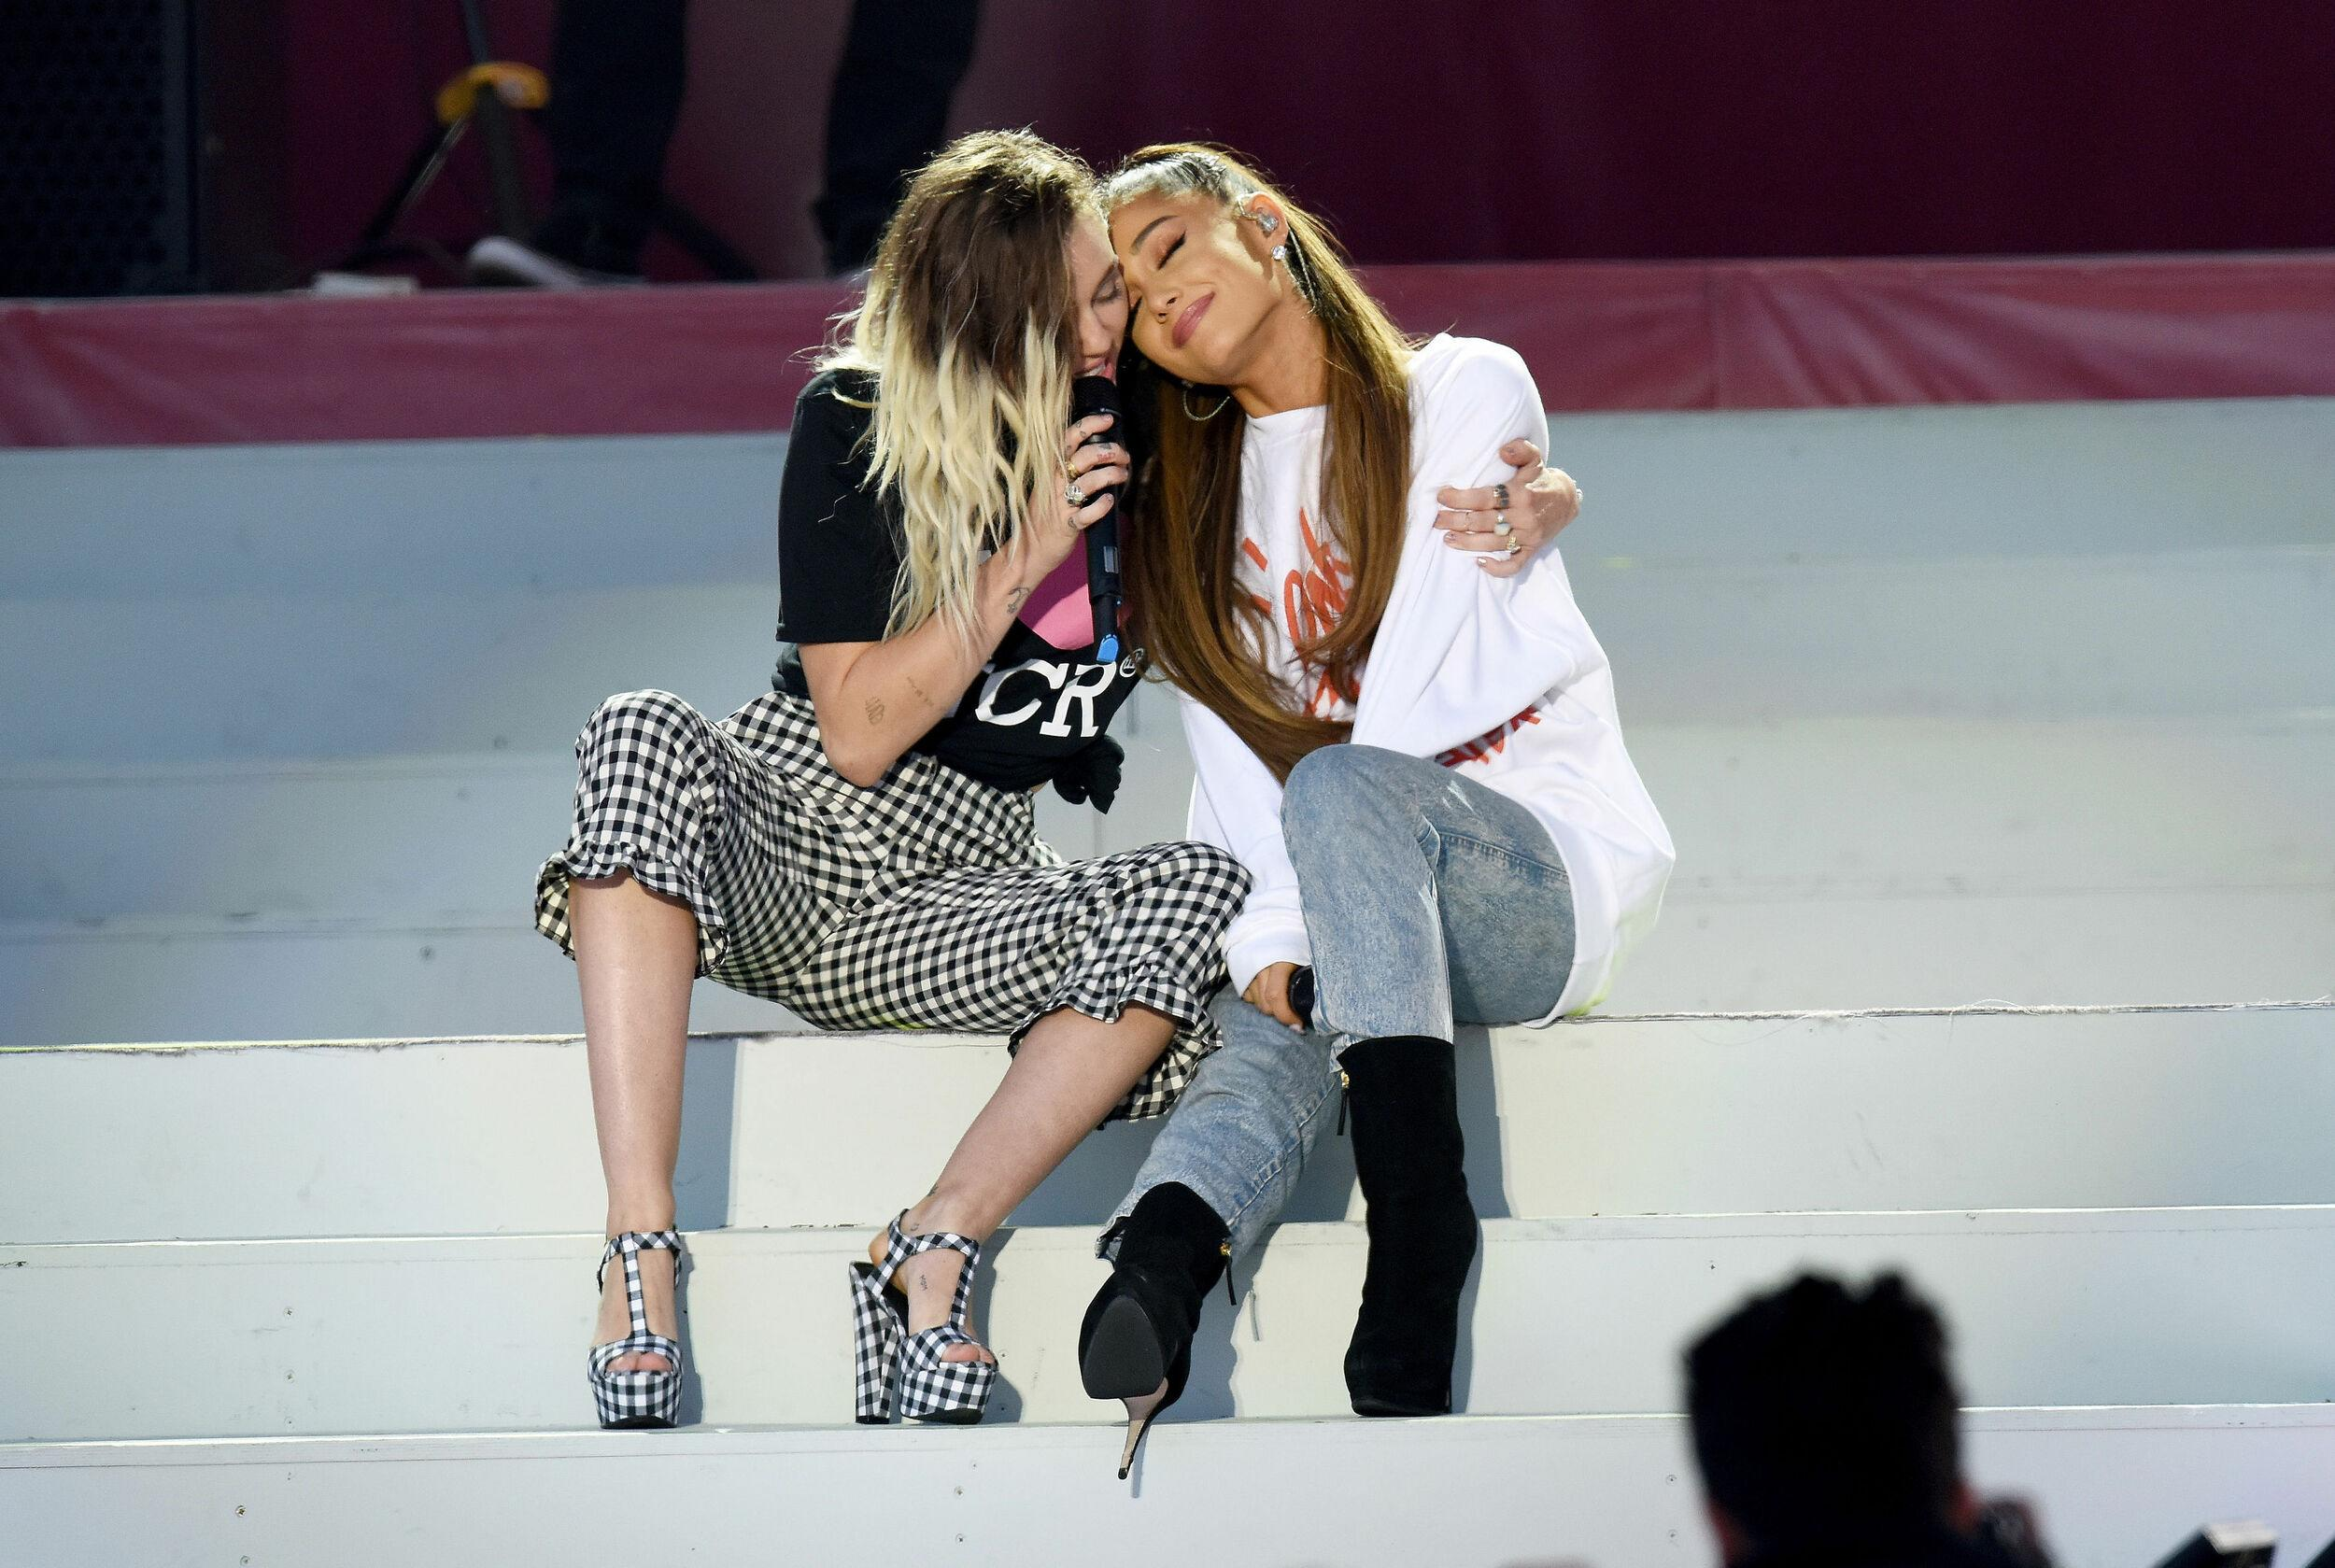 NO SALES. Free for editorial use. Handout photo issued by One Love Manchester of Miley Cyrus (left) and Ariana Grande (right) during the One Love Manchester benefit concert for the victims of the Manchester Arena terror attack at Emirates Old Trafford, Greater Manchester.